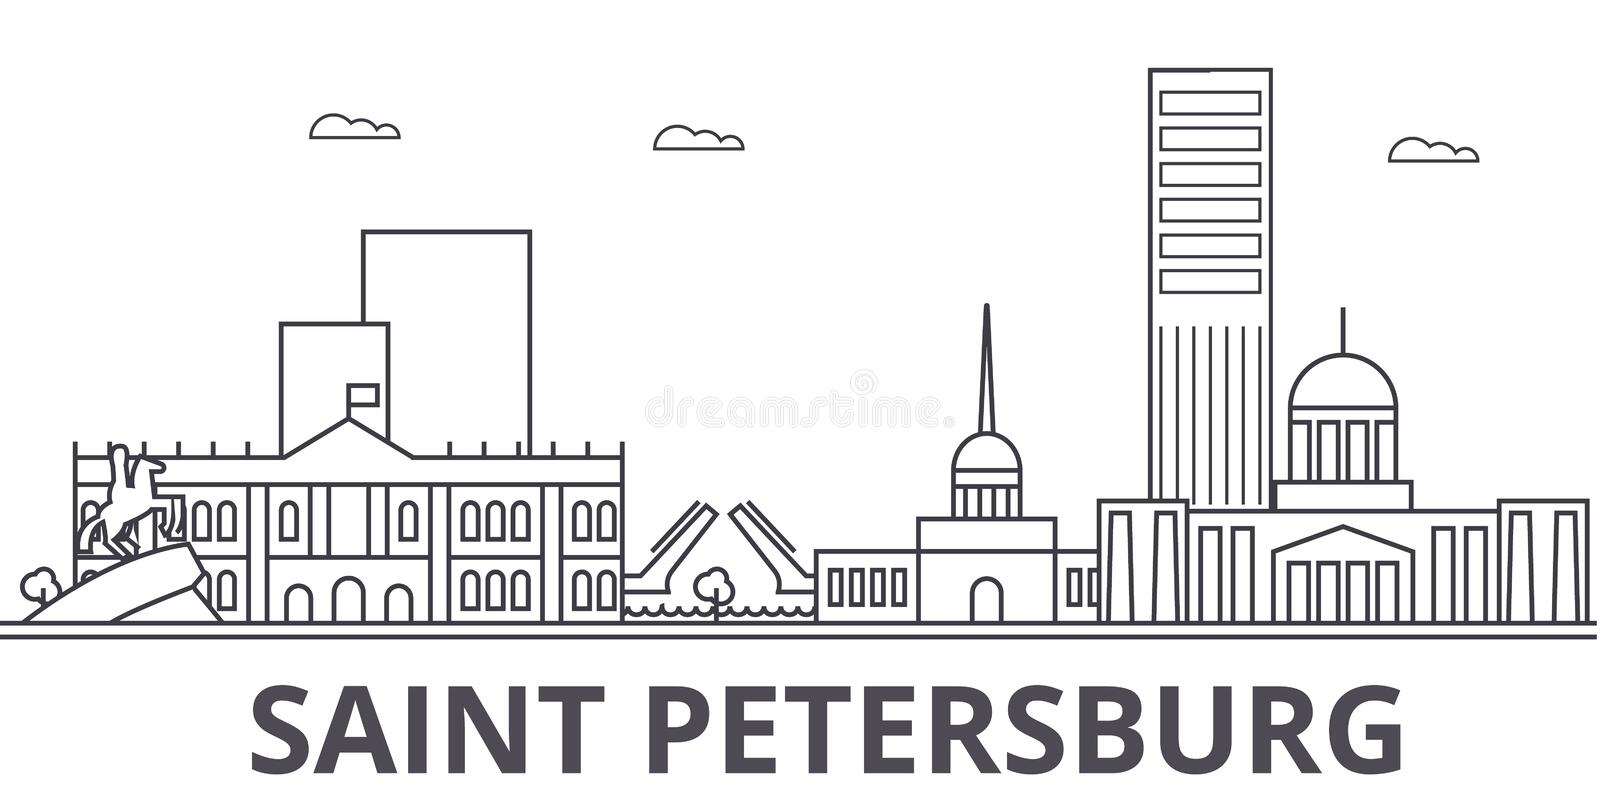 Sankt Petersburg architecture line skyline illustration. Linear vector cityscape with famous landmarks, city sights royalty free illustration